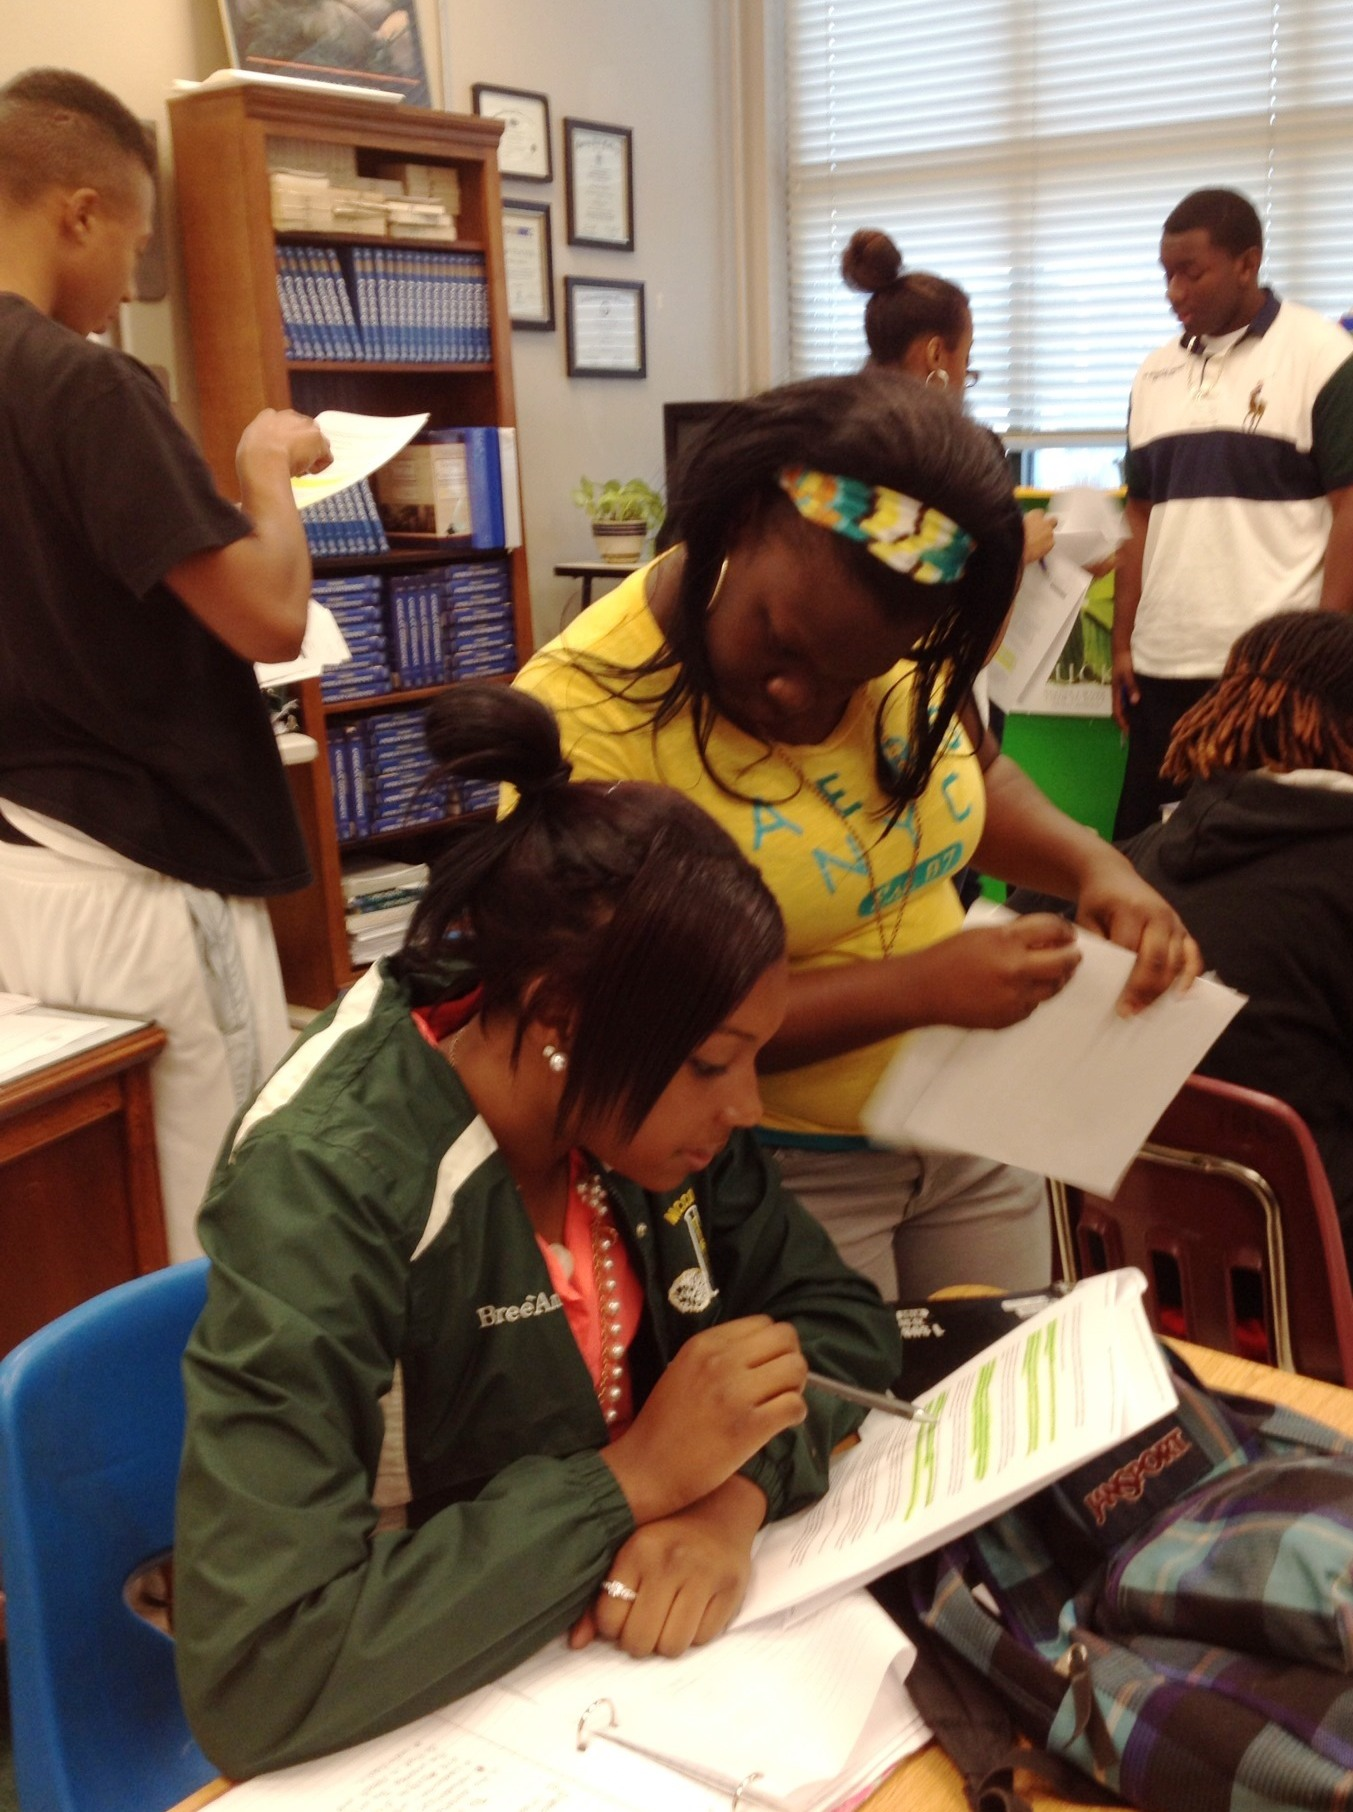 Students engaged in this lesson in Ms. Malone's classroom in McComb, Miss.